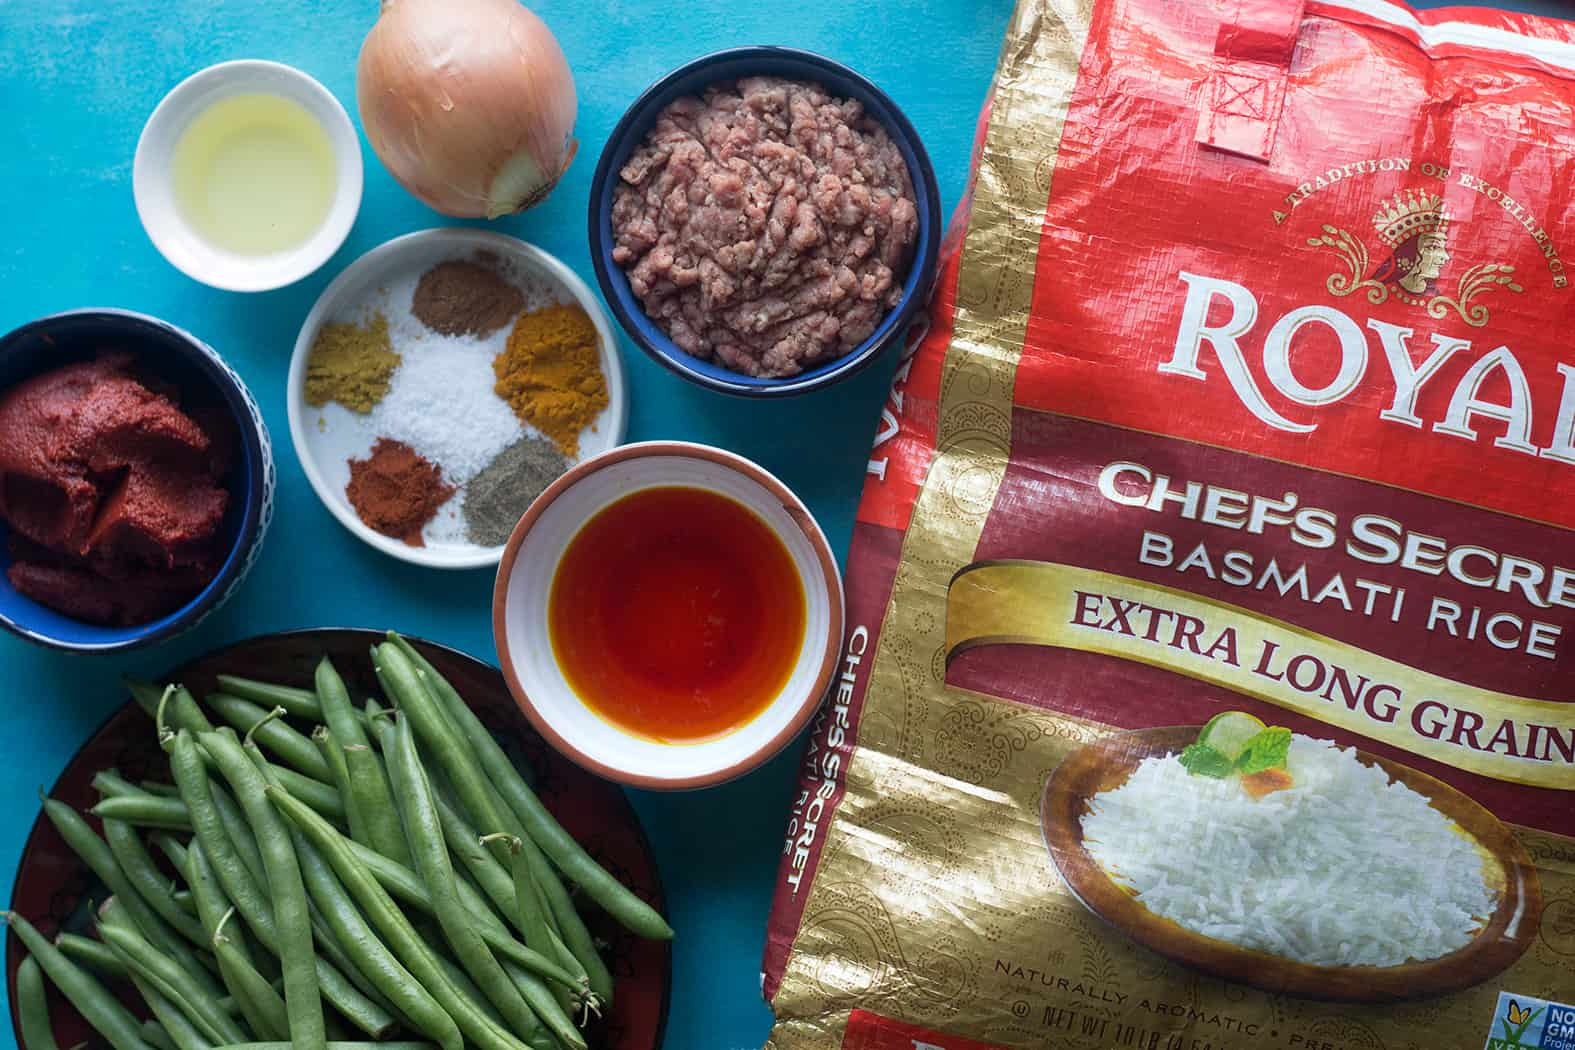 to make Persian loobia polo you need green beans, rice, ground beef, spices, saffron and onion.